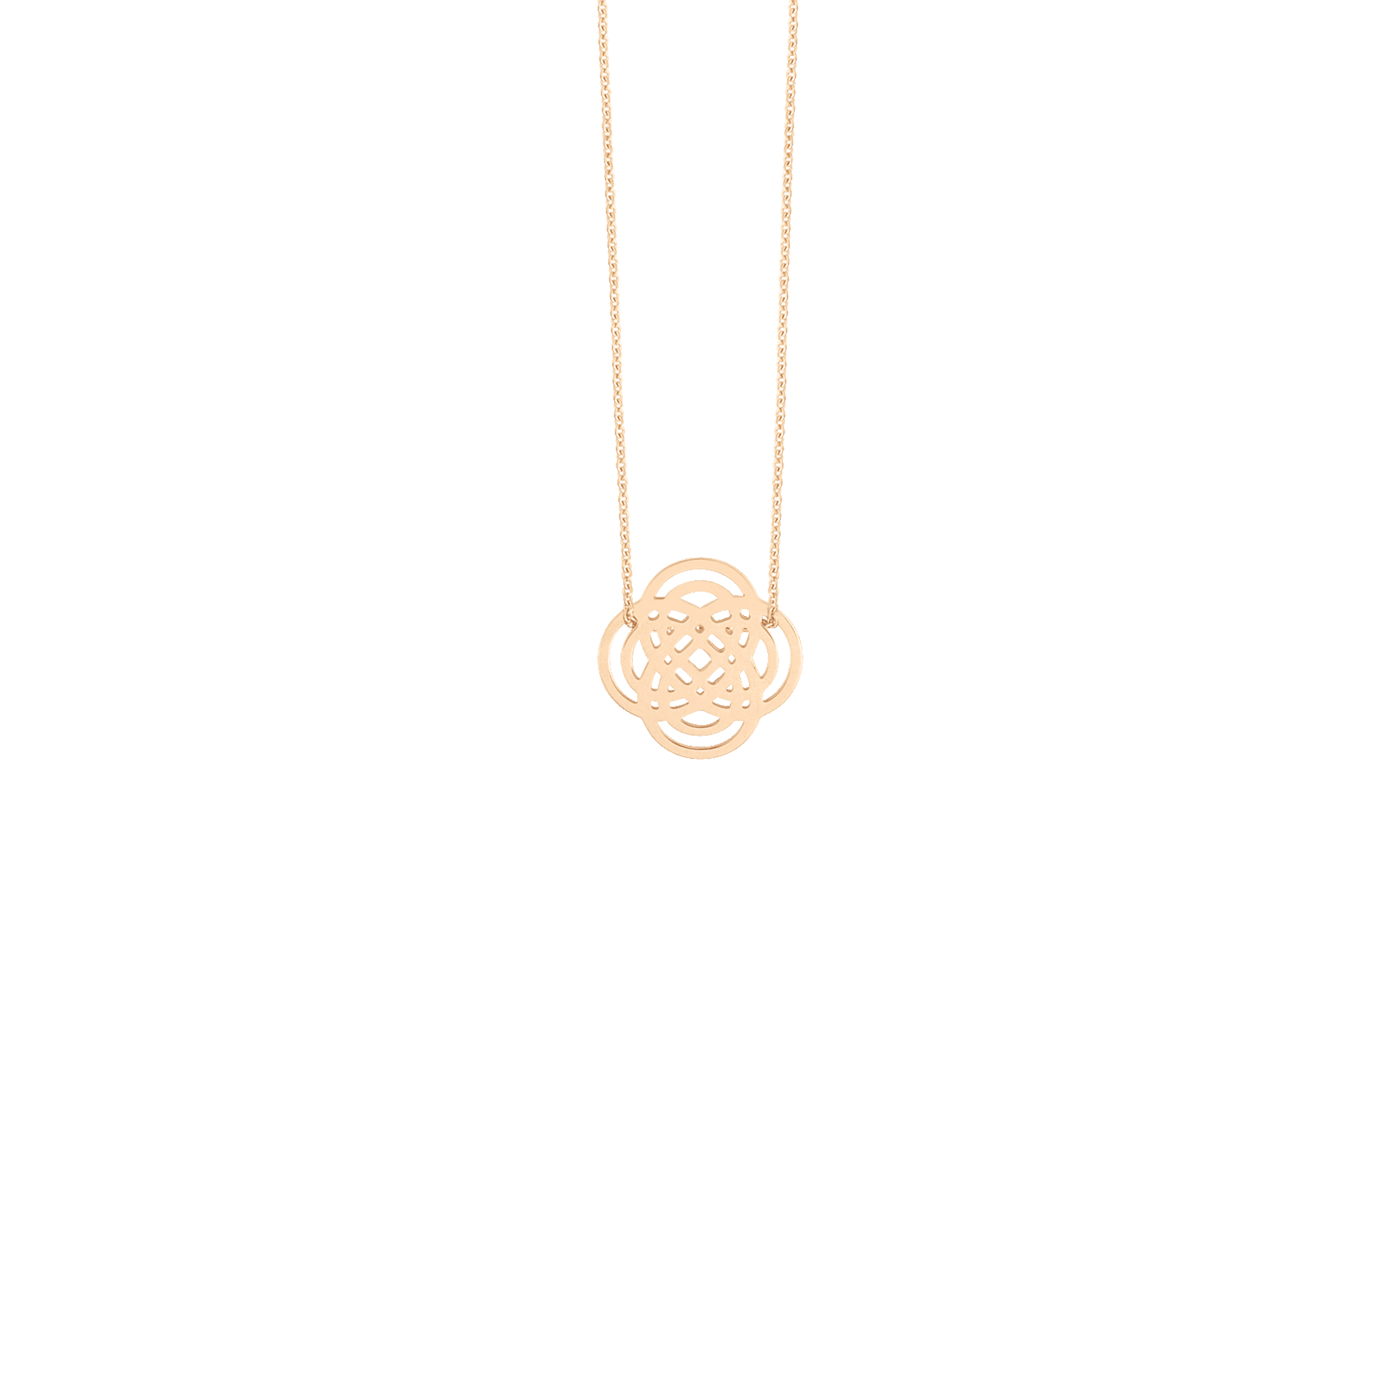 Collier Mini Purity On Chain en or rose Ginette NY, colliers - Lepage